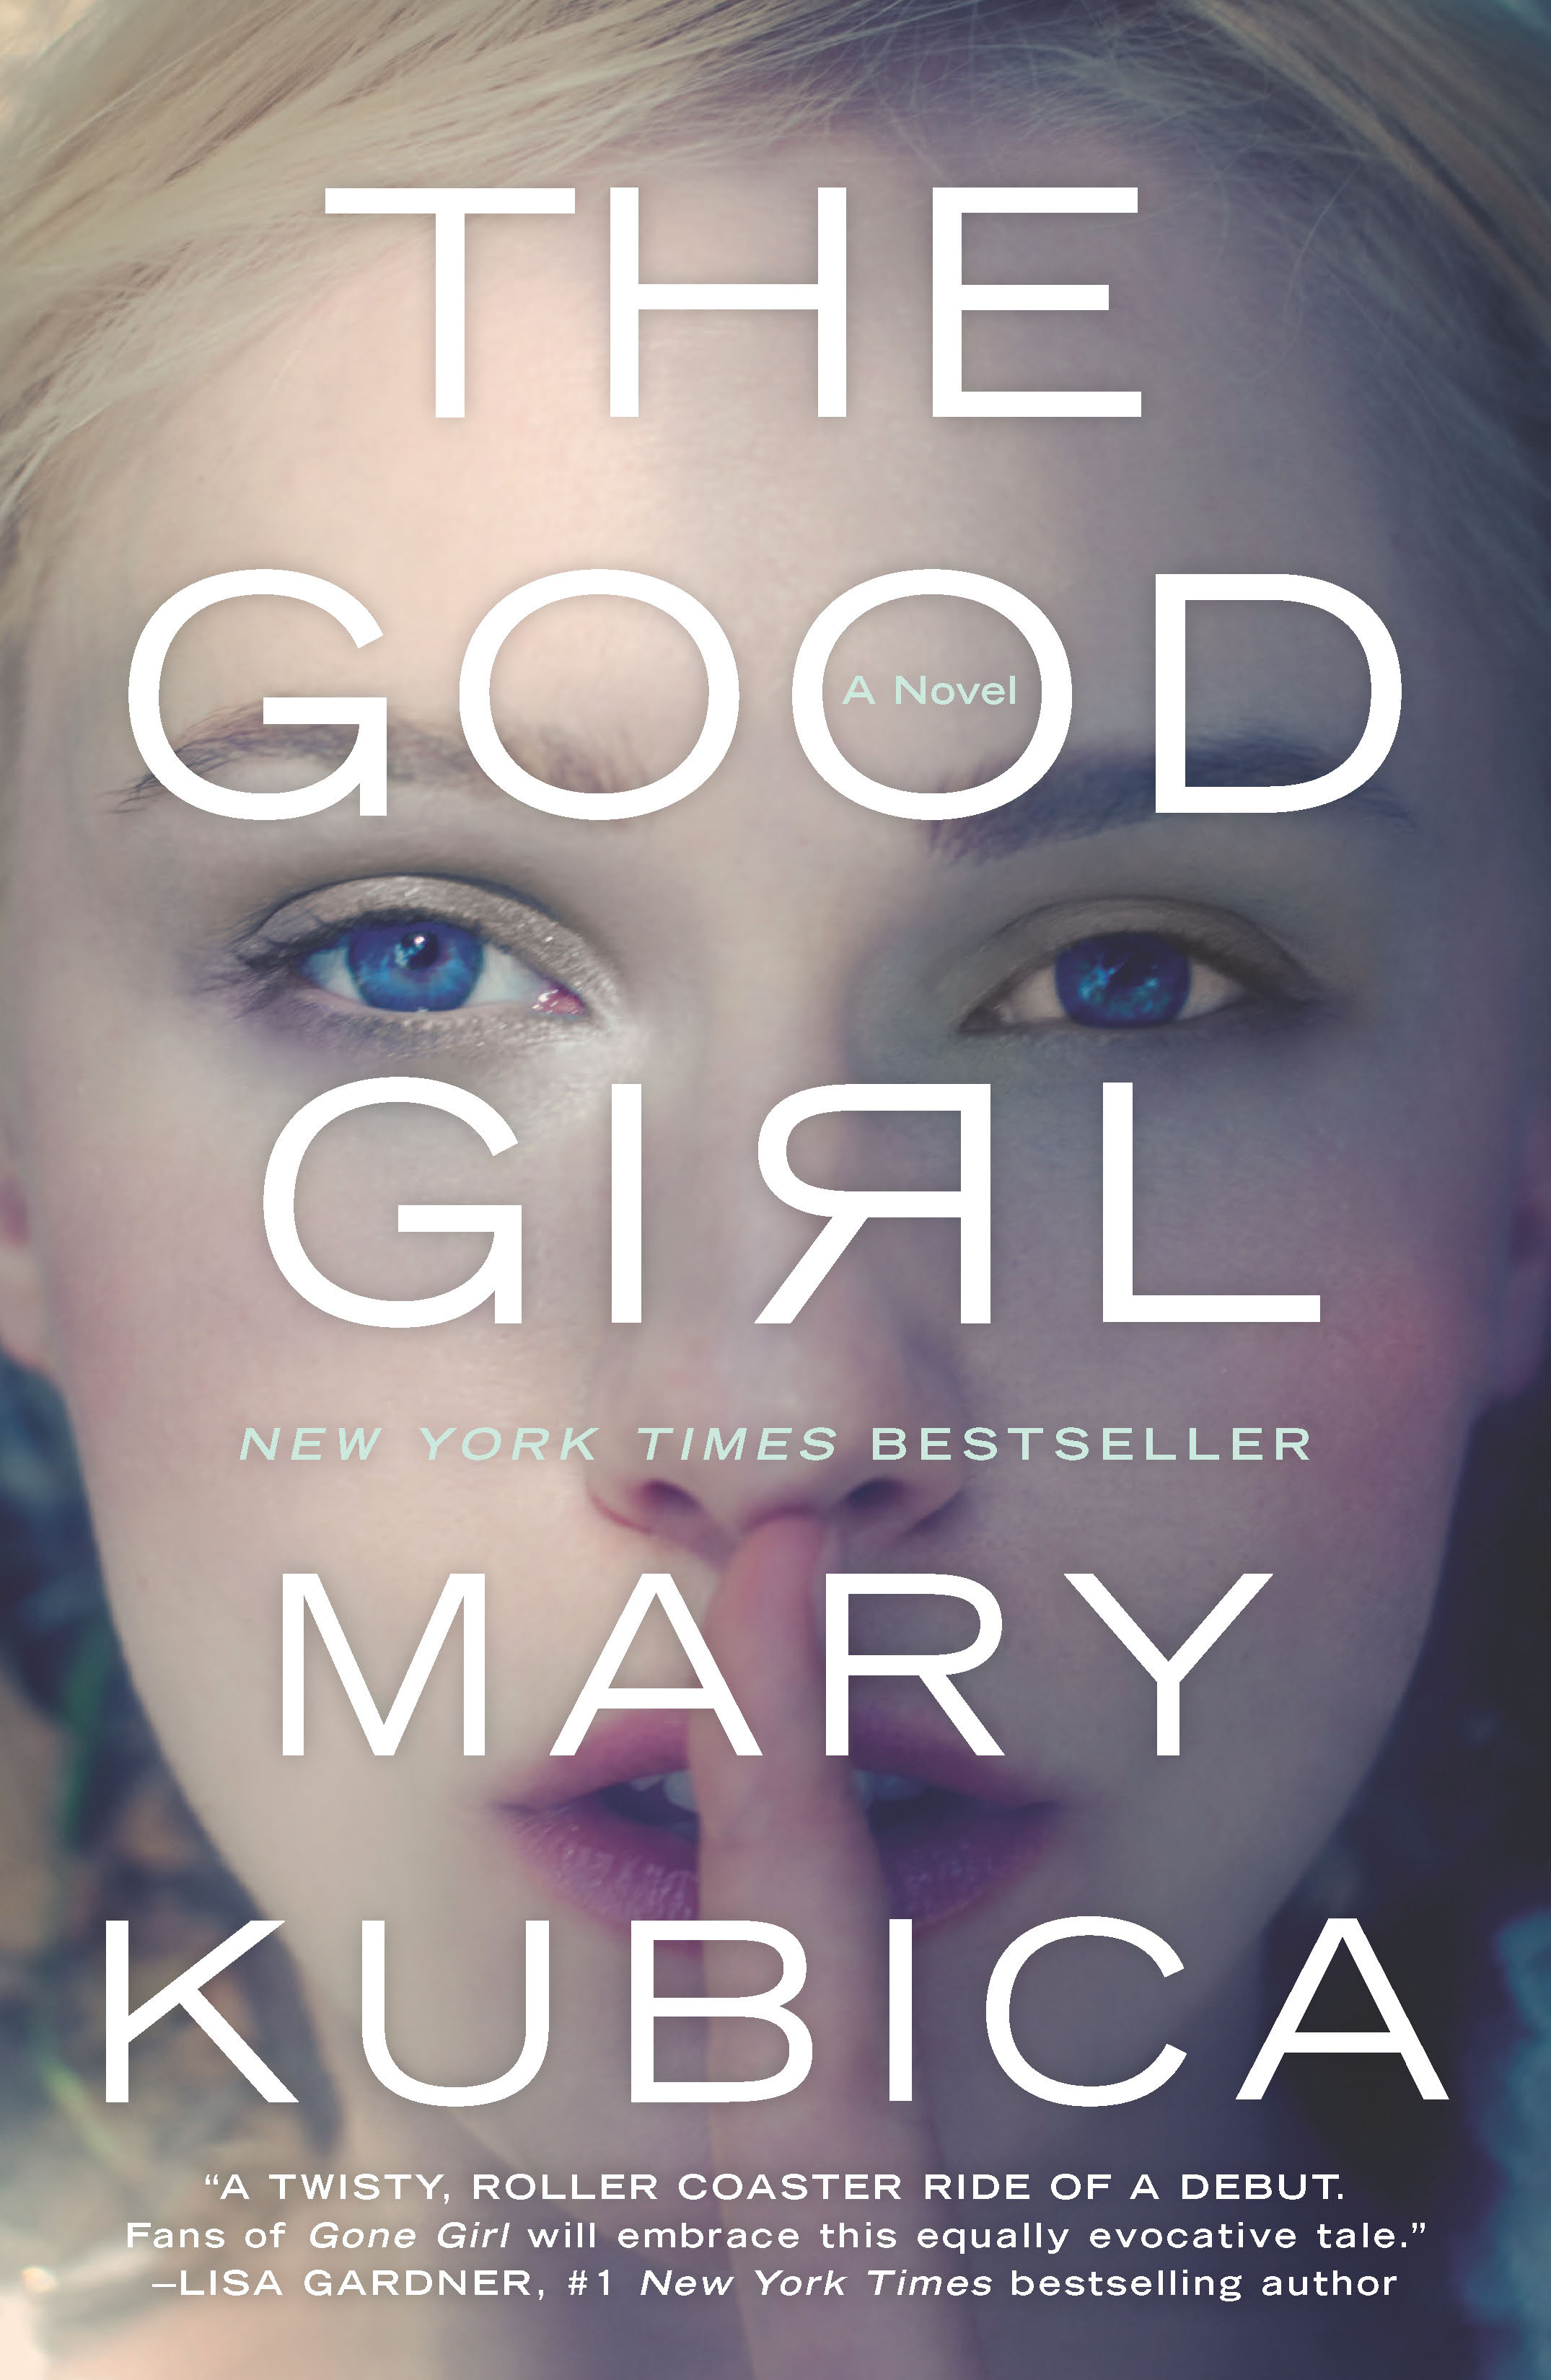 THE GOOD GIRL FTT 9780778317760_TS_PRD_BB